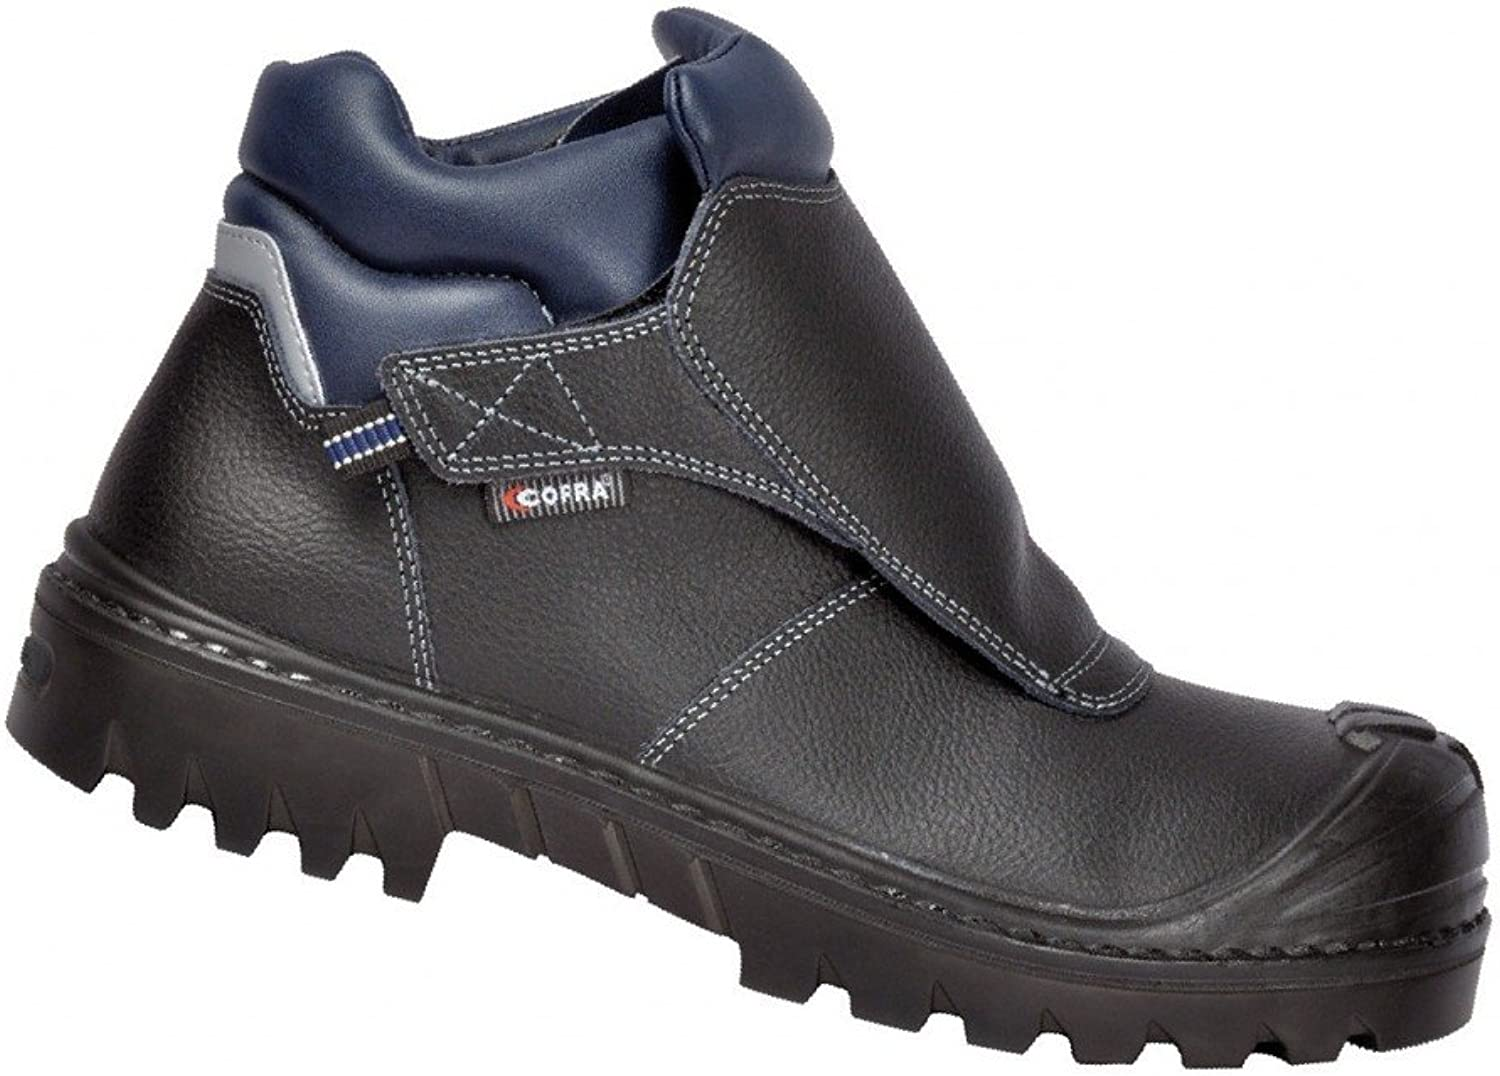 Cofra Men's Non-Metallic Welder Safety Boots